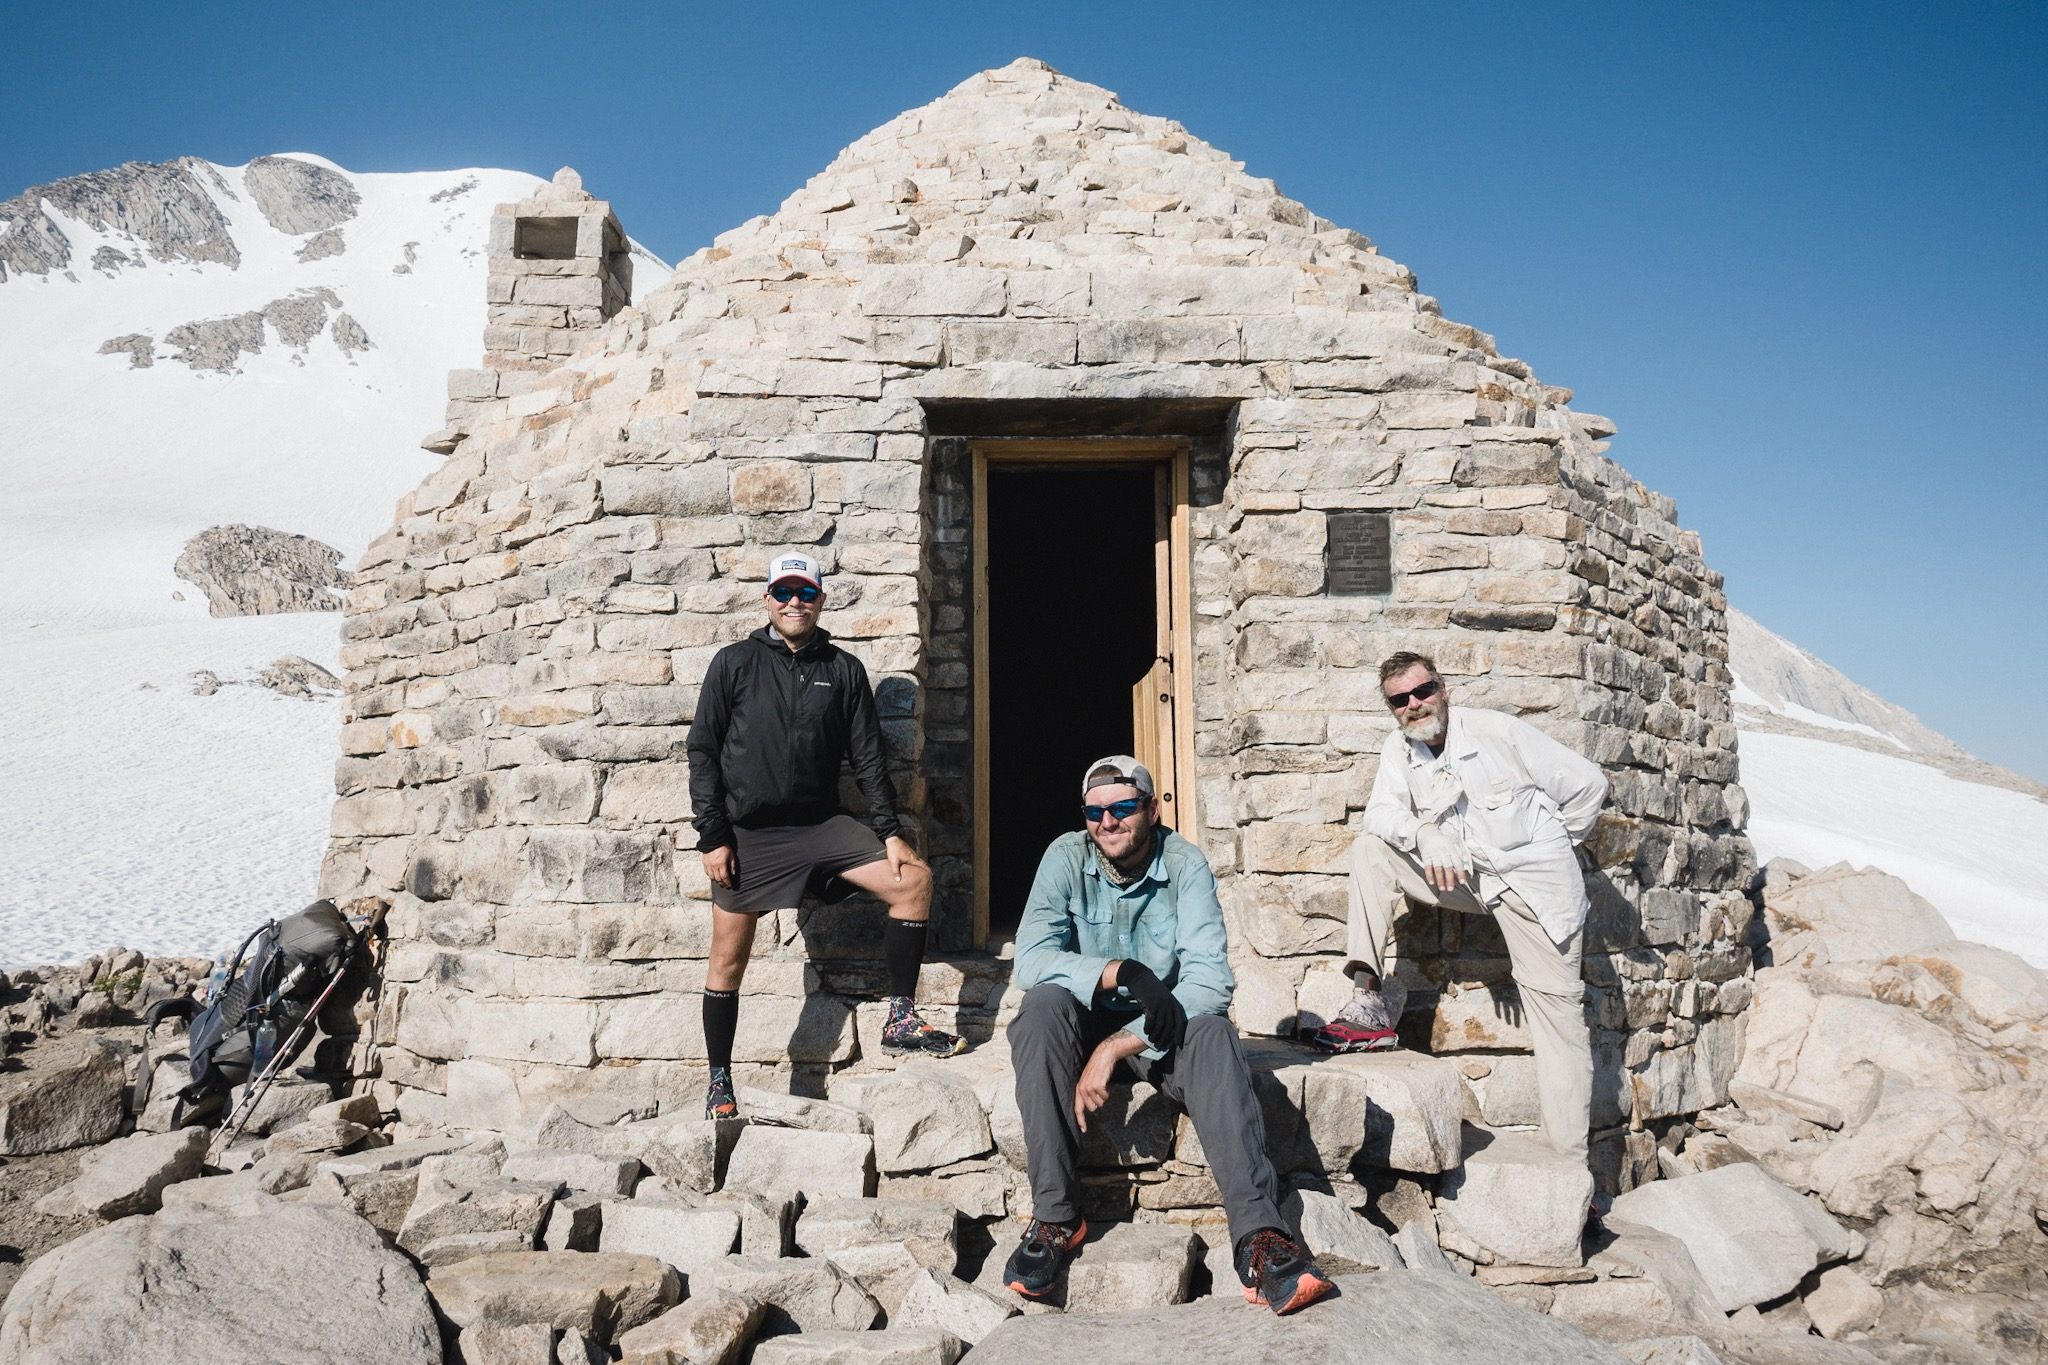 The author, DG, and Topo at the Muir Hut.